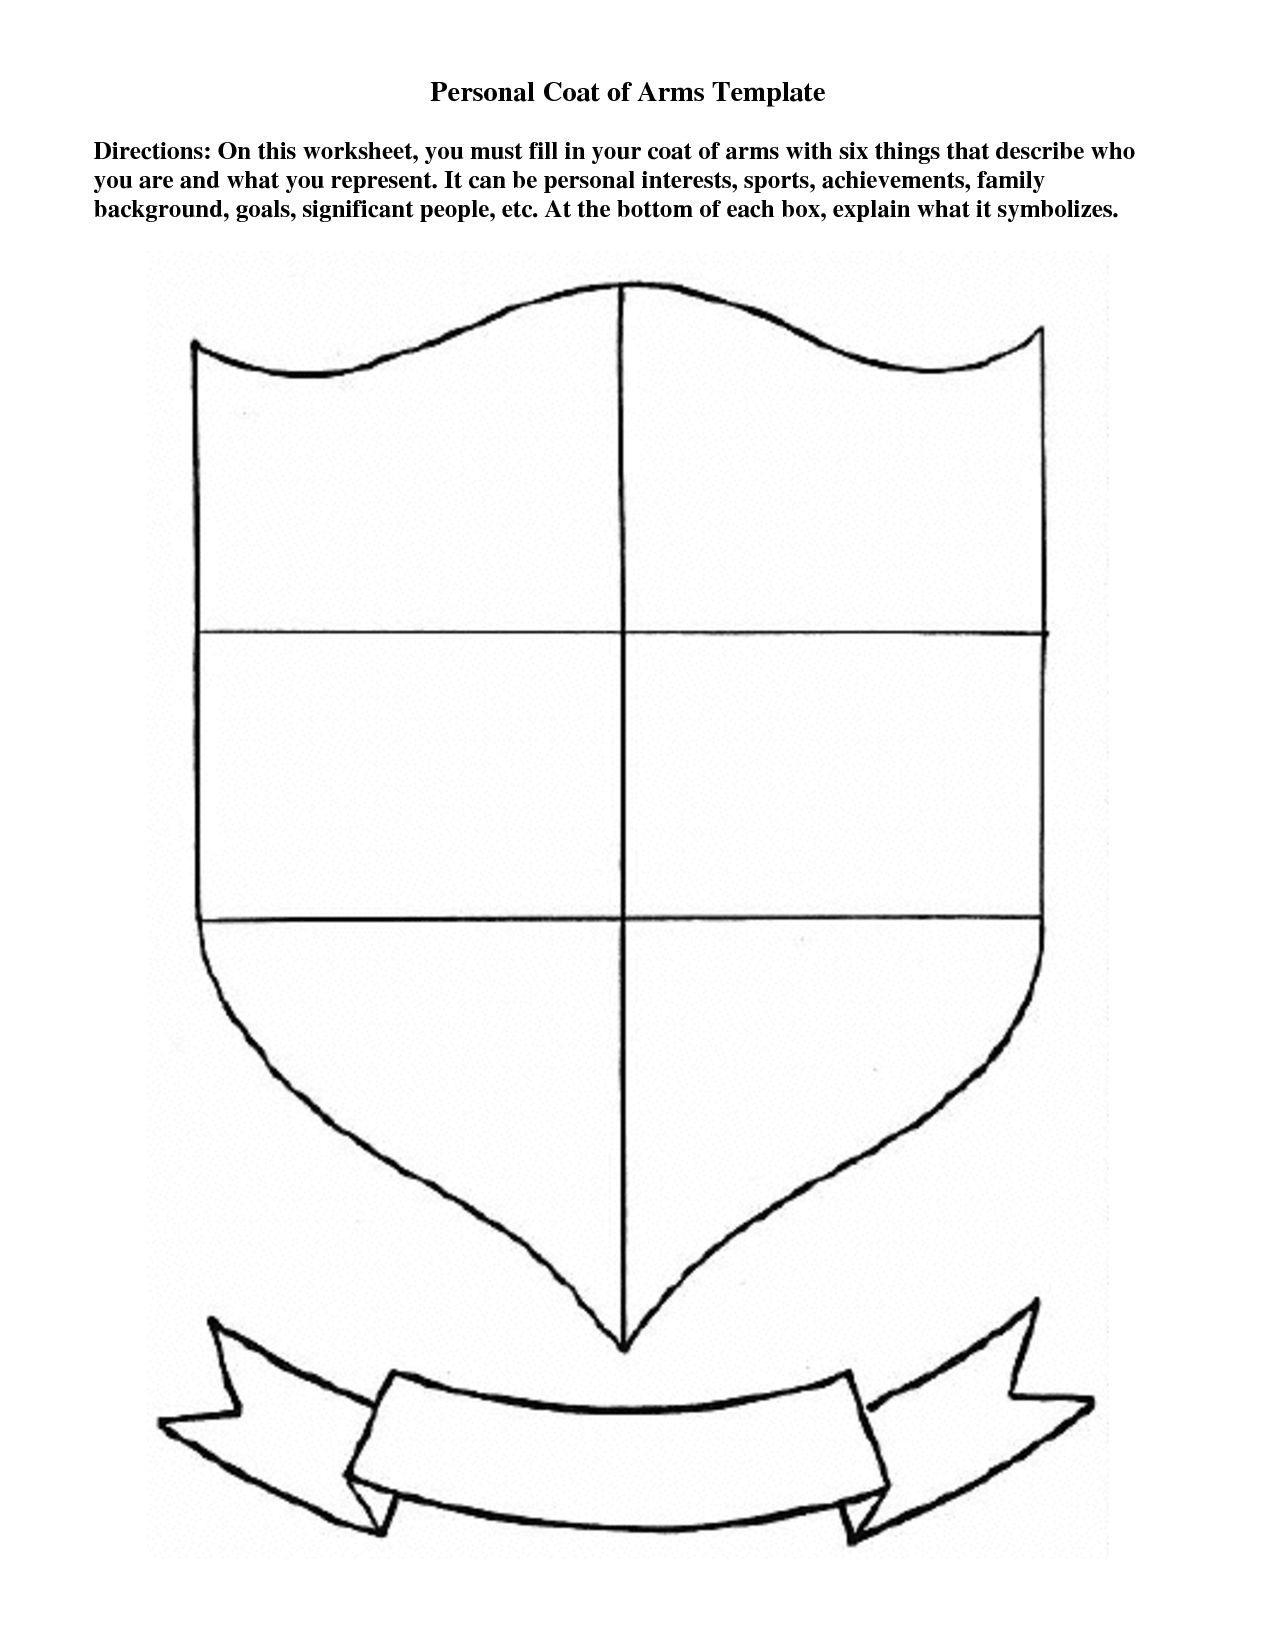 Personal Coat Of Arms Template | Education | Coat Of Arms, Art | Printable Coat Of Arms Worksheet